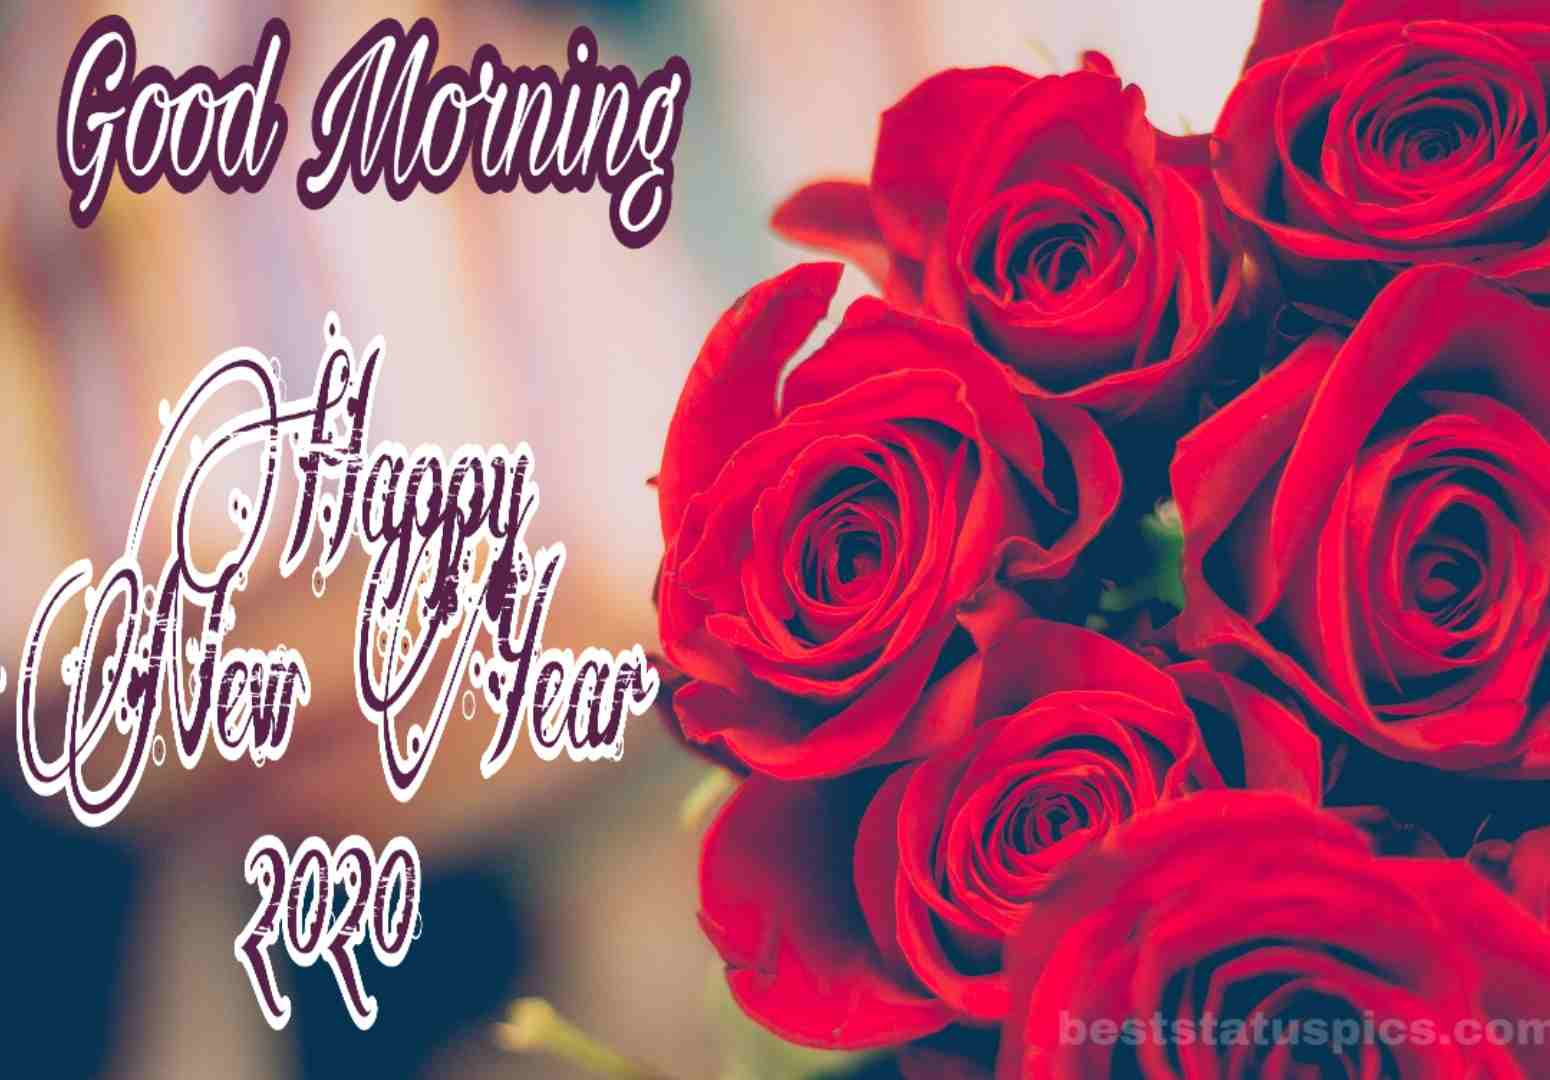 Good Morning Happy New Year 2020 Whatsapp Dp Status Images